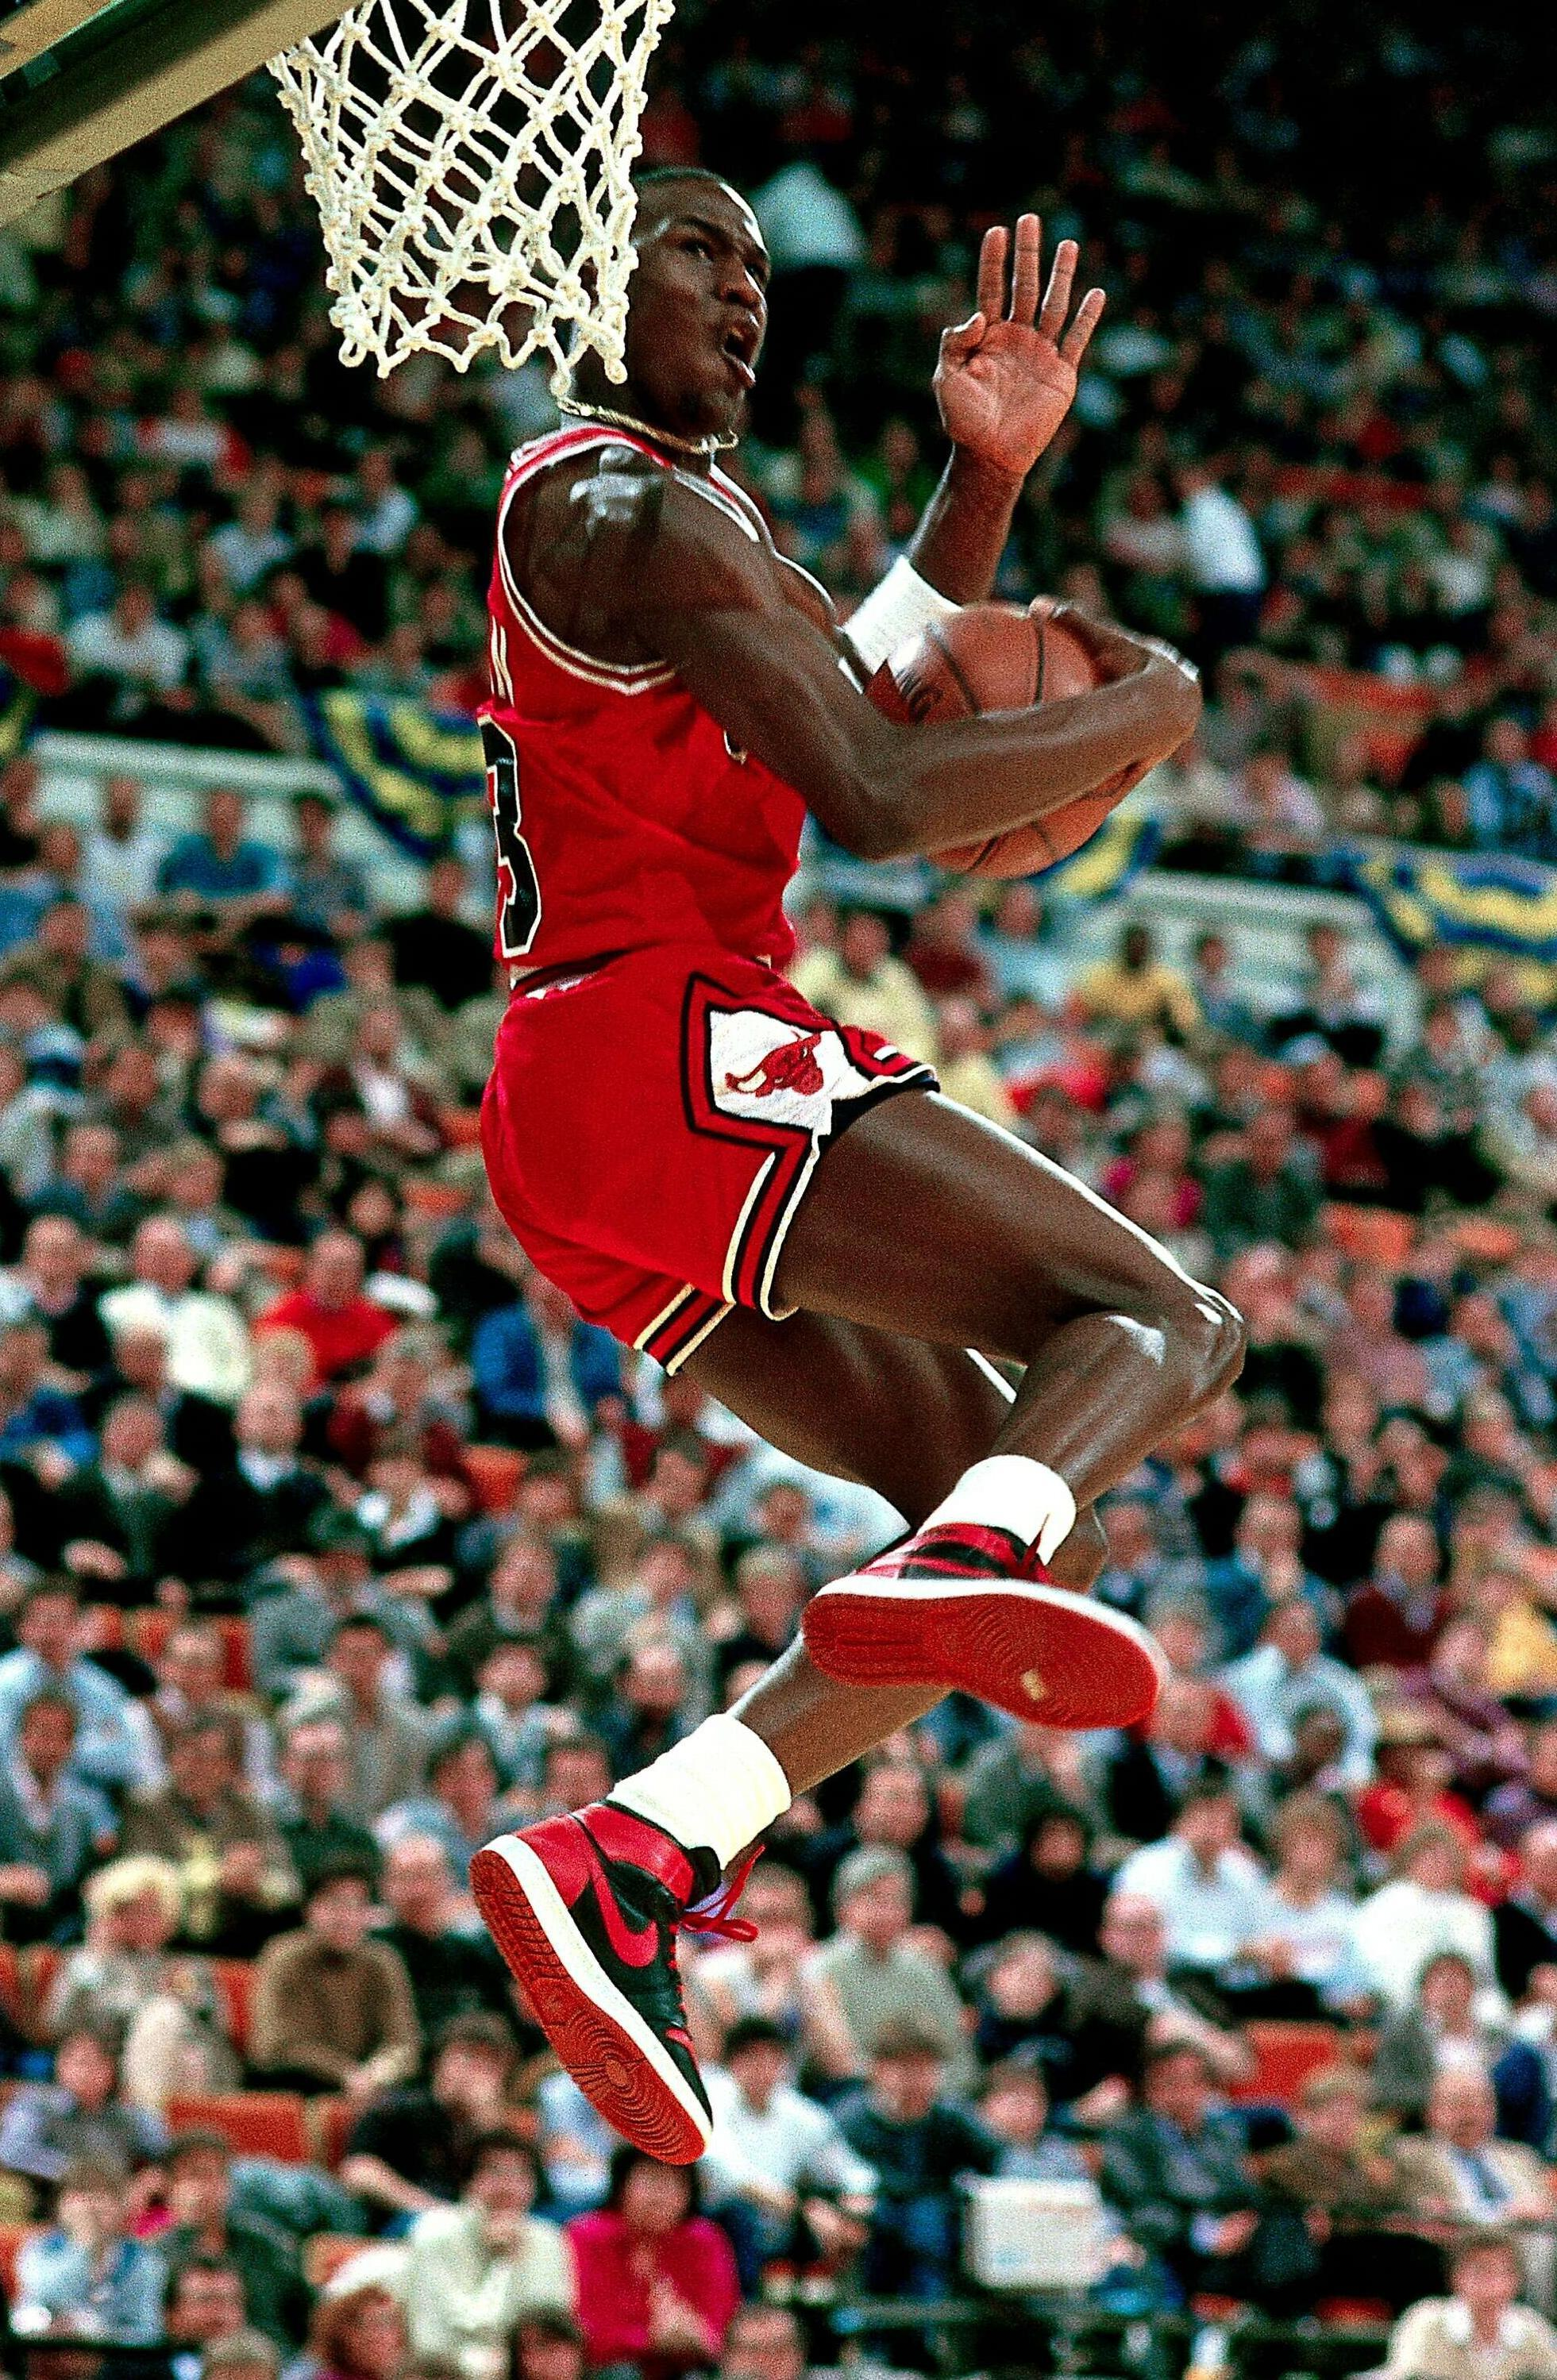 buy popular d23da 2b084 The Air Jordan I Michael Jordan wore in the dunk contest was banned by the  NBA.